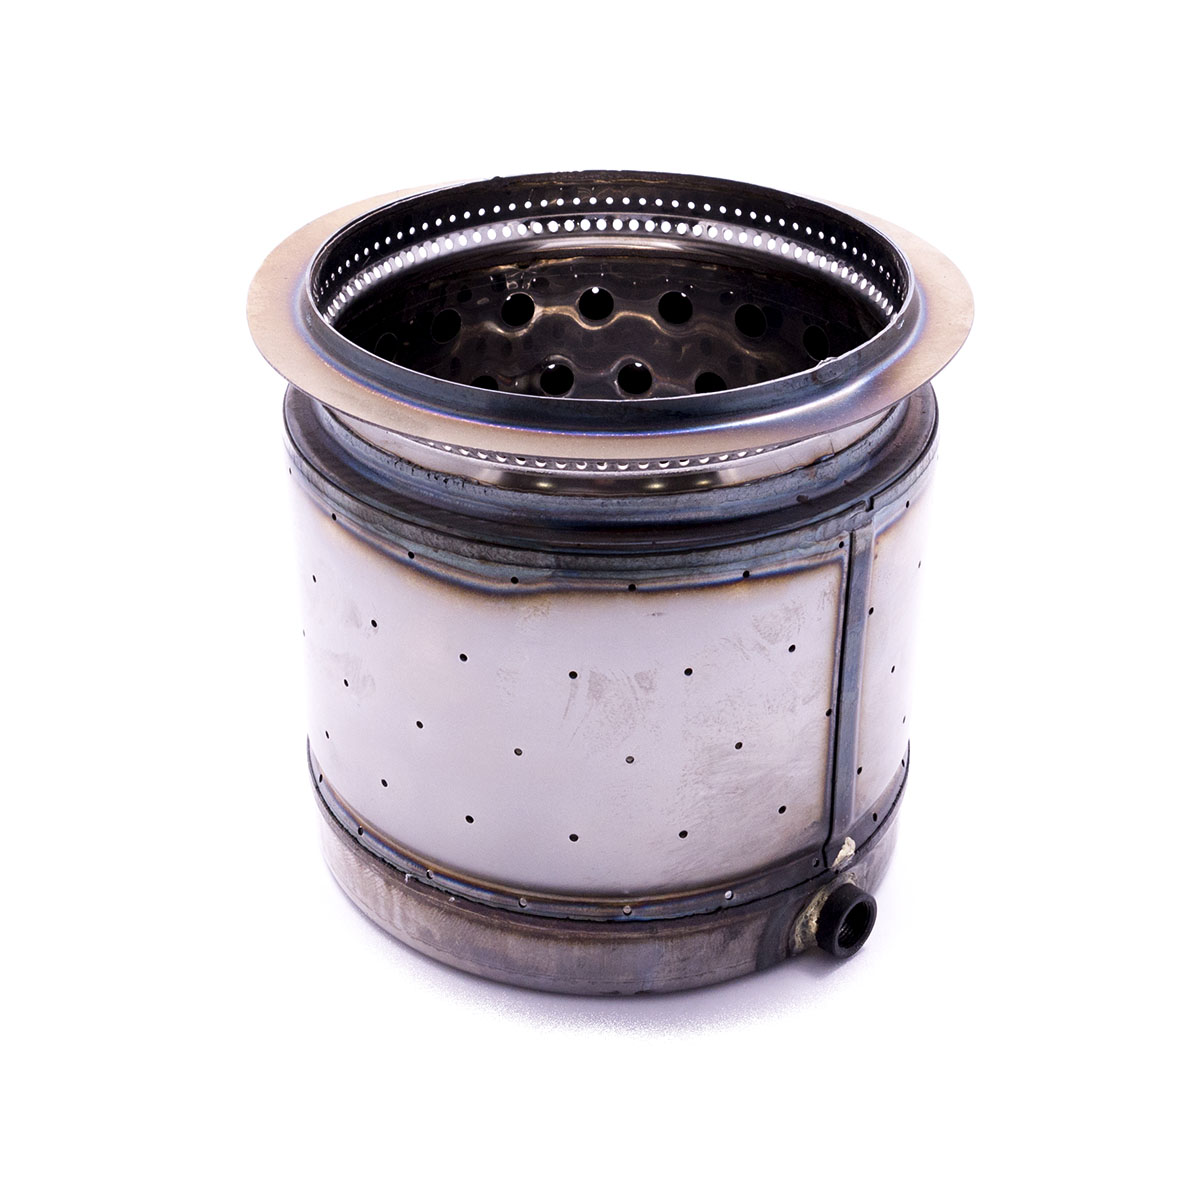 "Burn Pot Replacement for 10"" Kuma Oil Stoves"